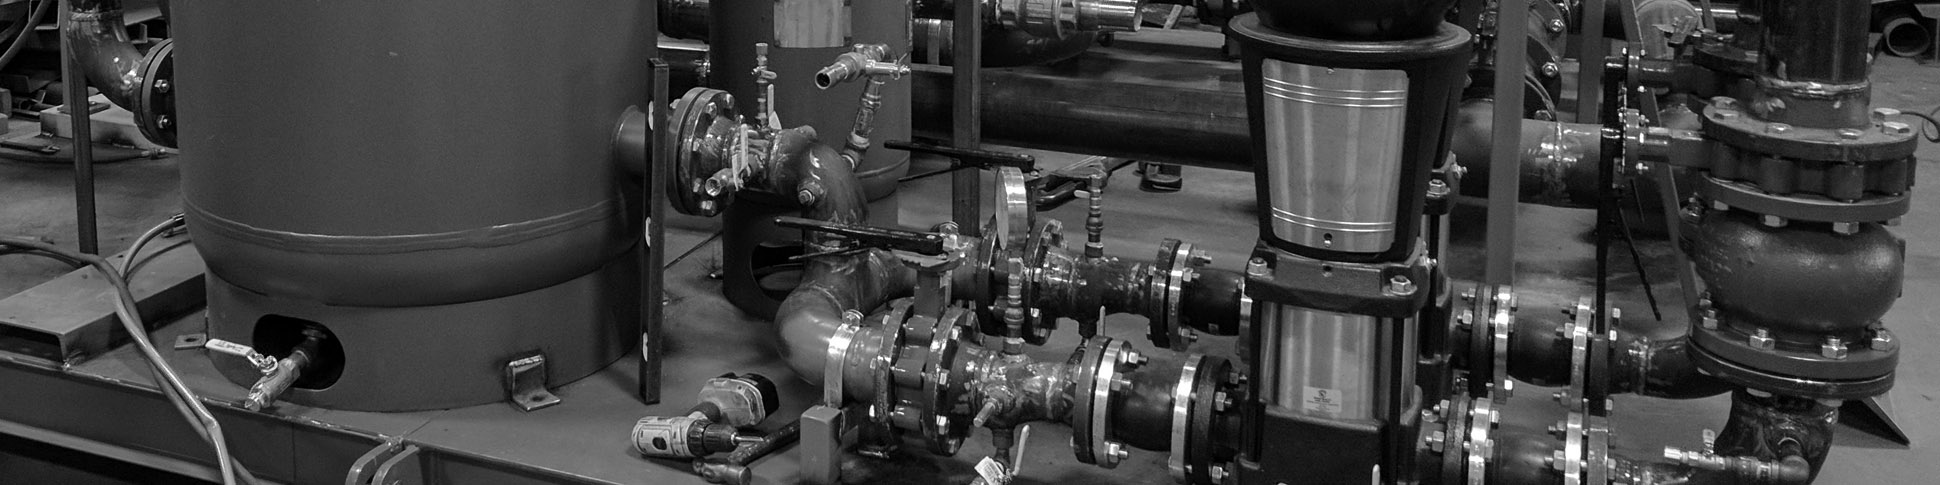 2D P&ID, Skid and Piping Fabrication Drawings | ACS Cad Services